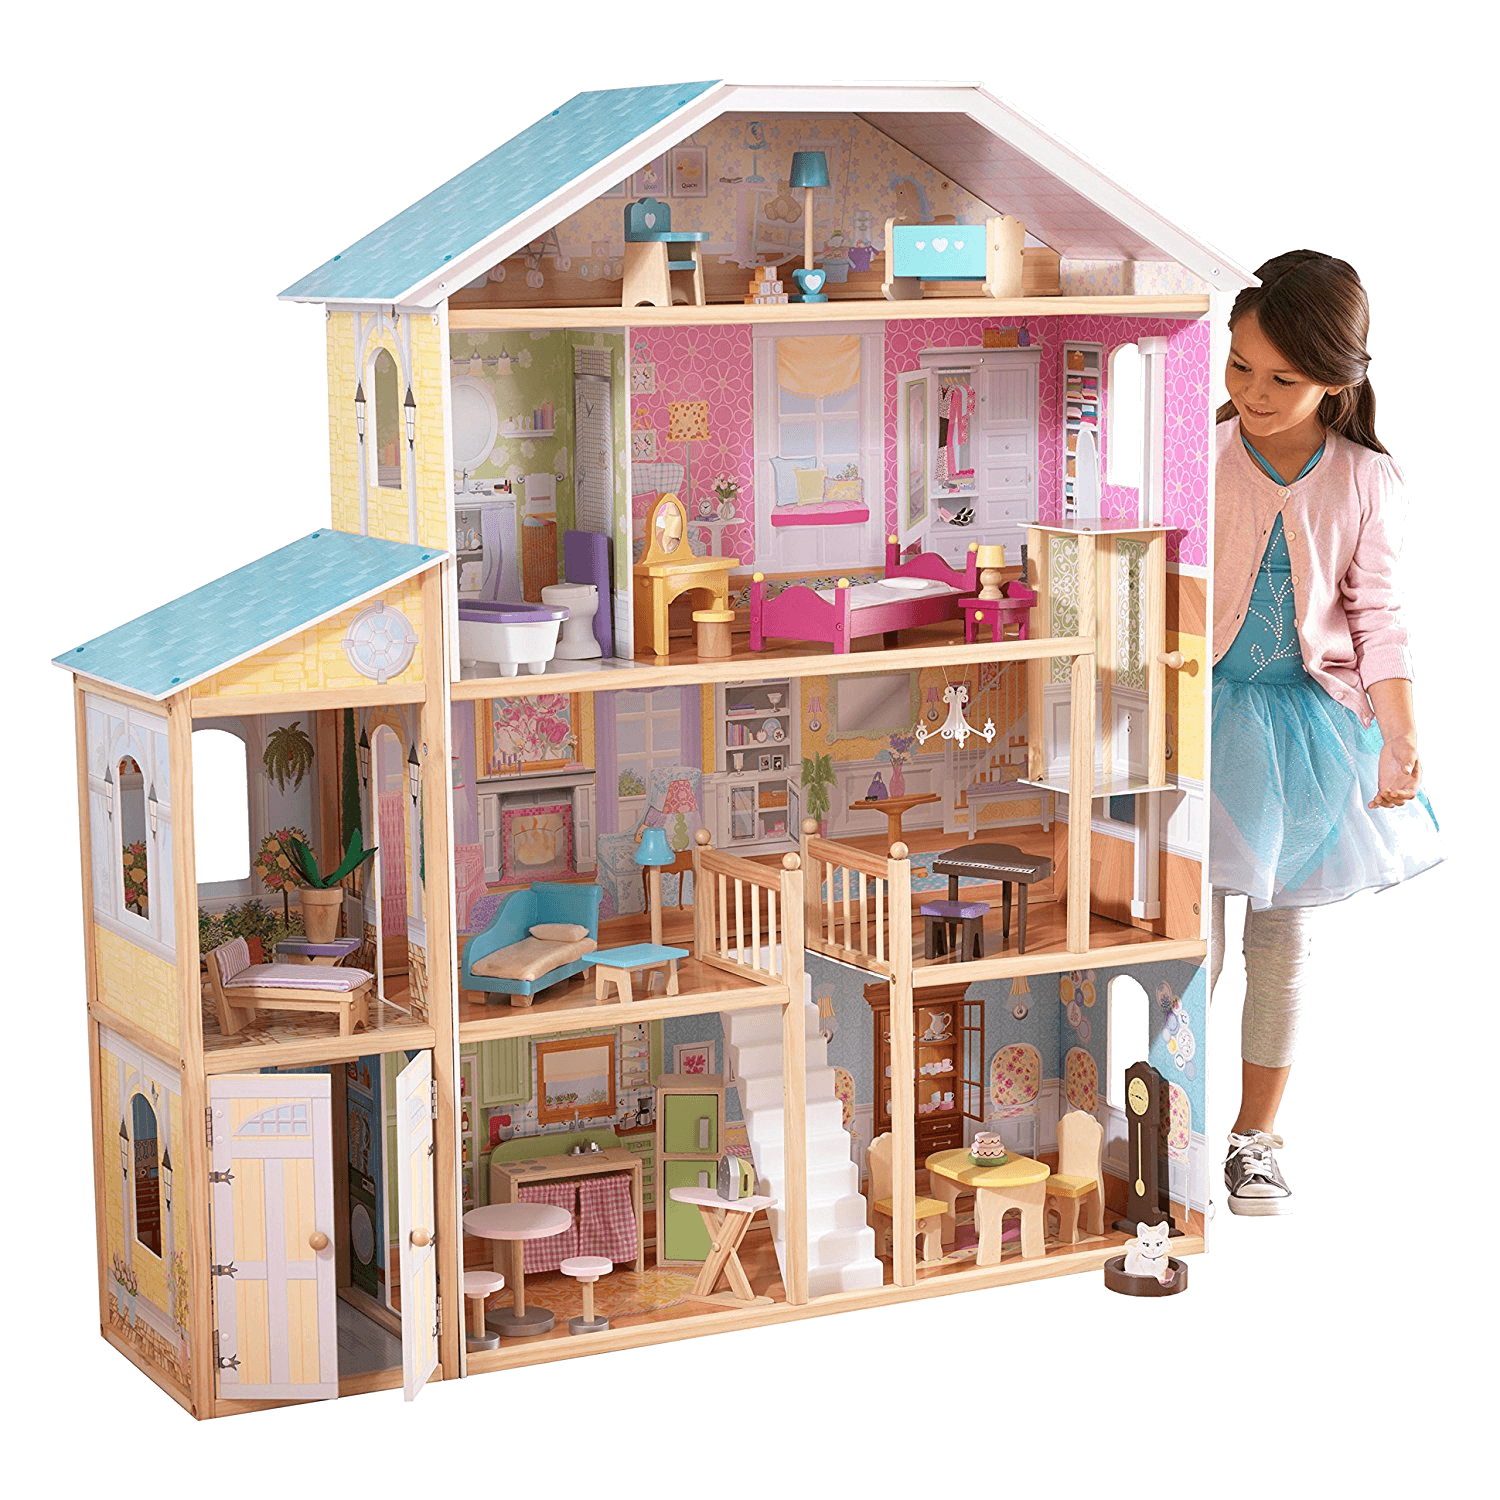 30 Fashion Accessories Barbie Size KidKraft Wooden Dollhouse Shimmer Mansion